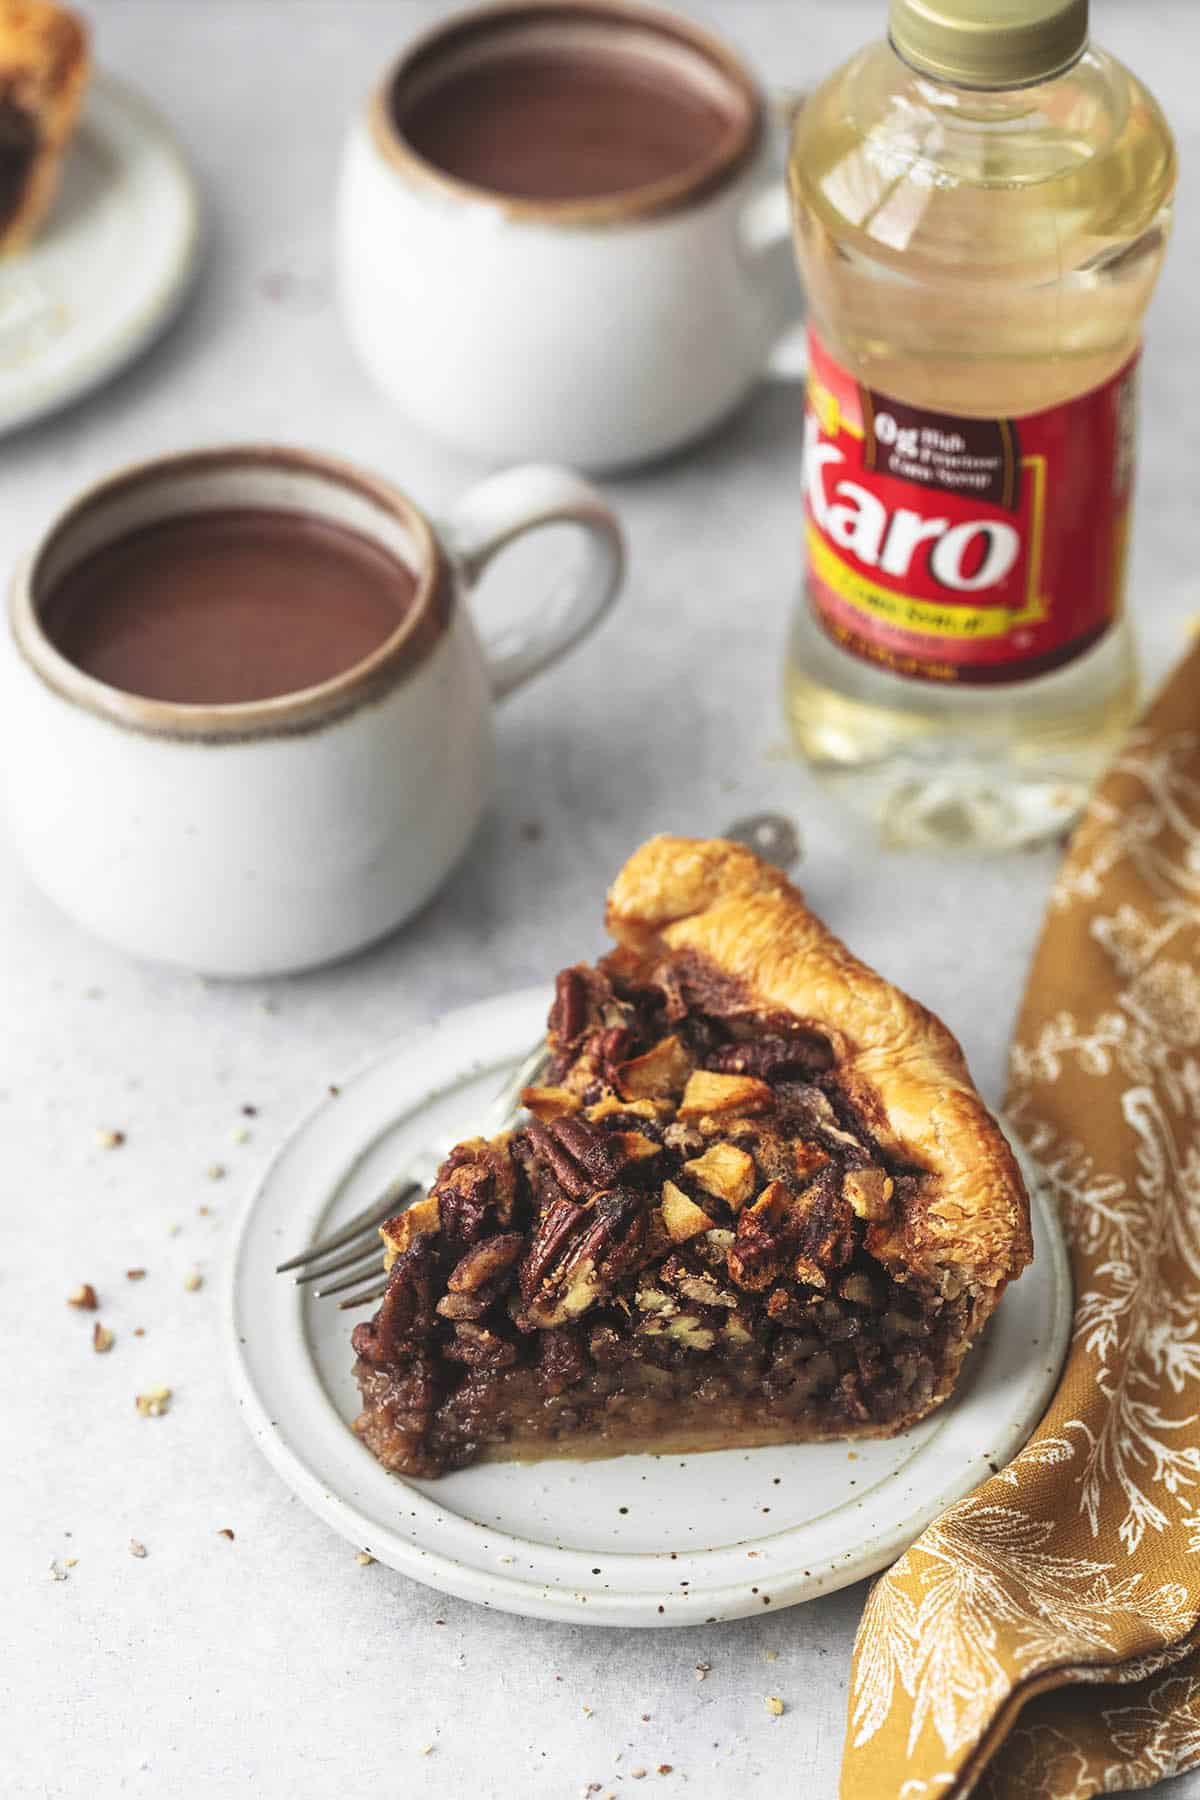 45 degree angle view of pie on plate with cup of hot chocolate and bottle of karo syrup